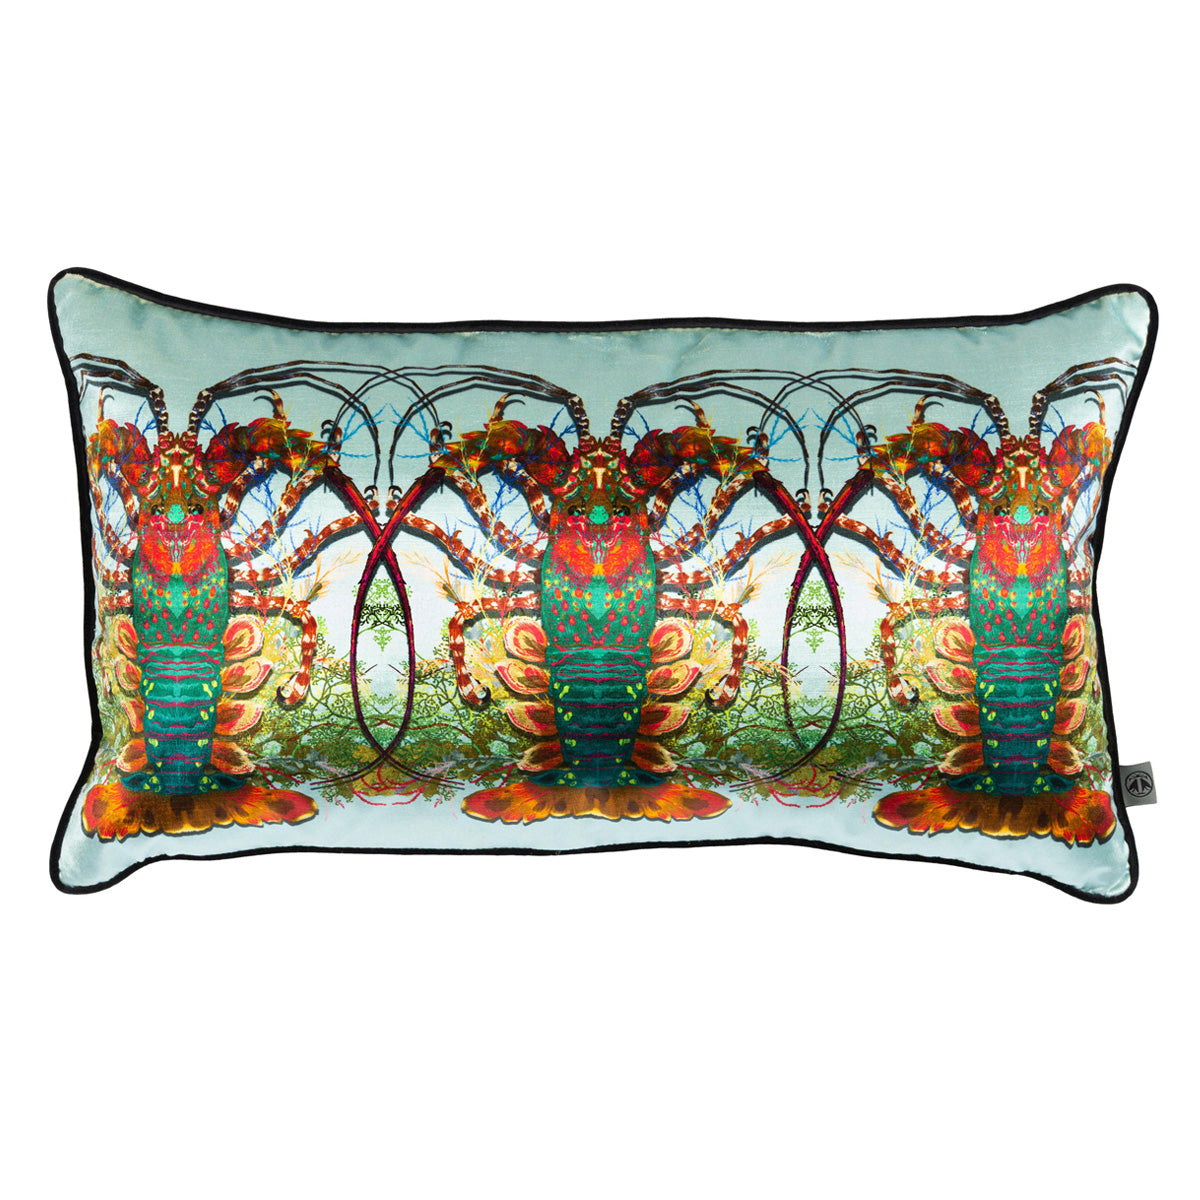 crustacean row velvet cushion, timorous beasties, accessories | pillows and cushions, - adorn.house